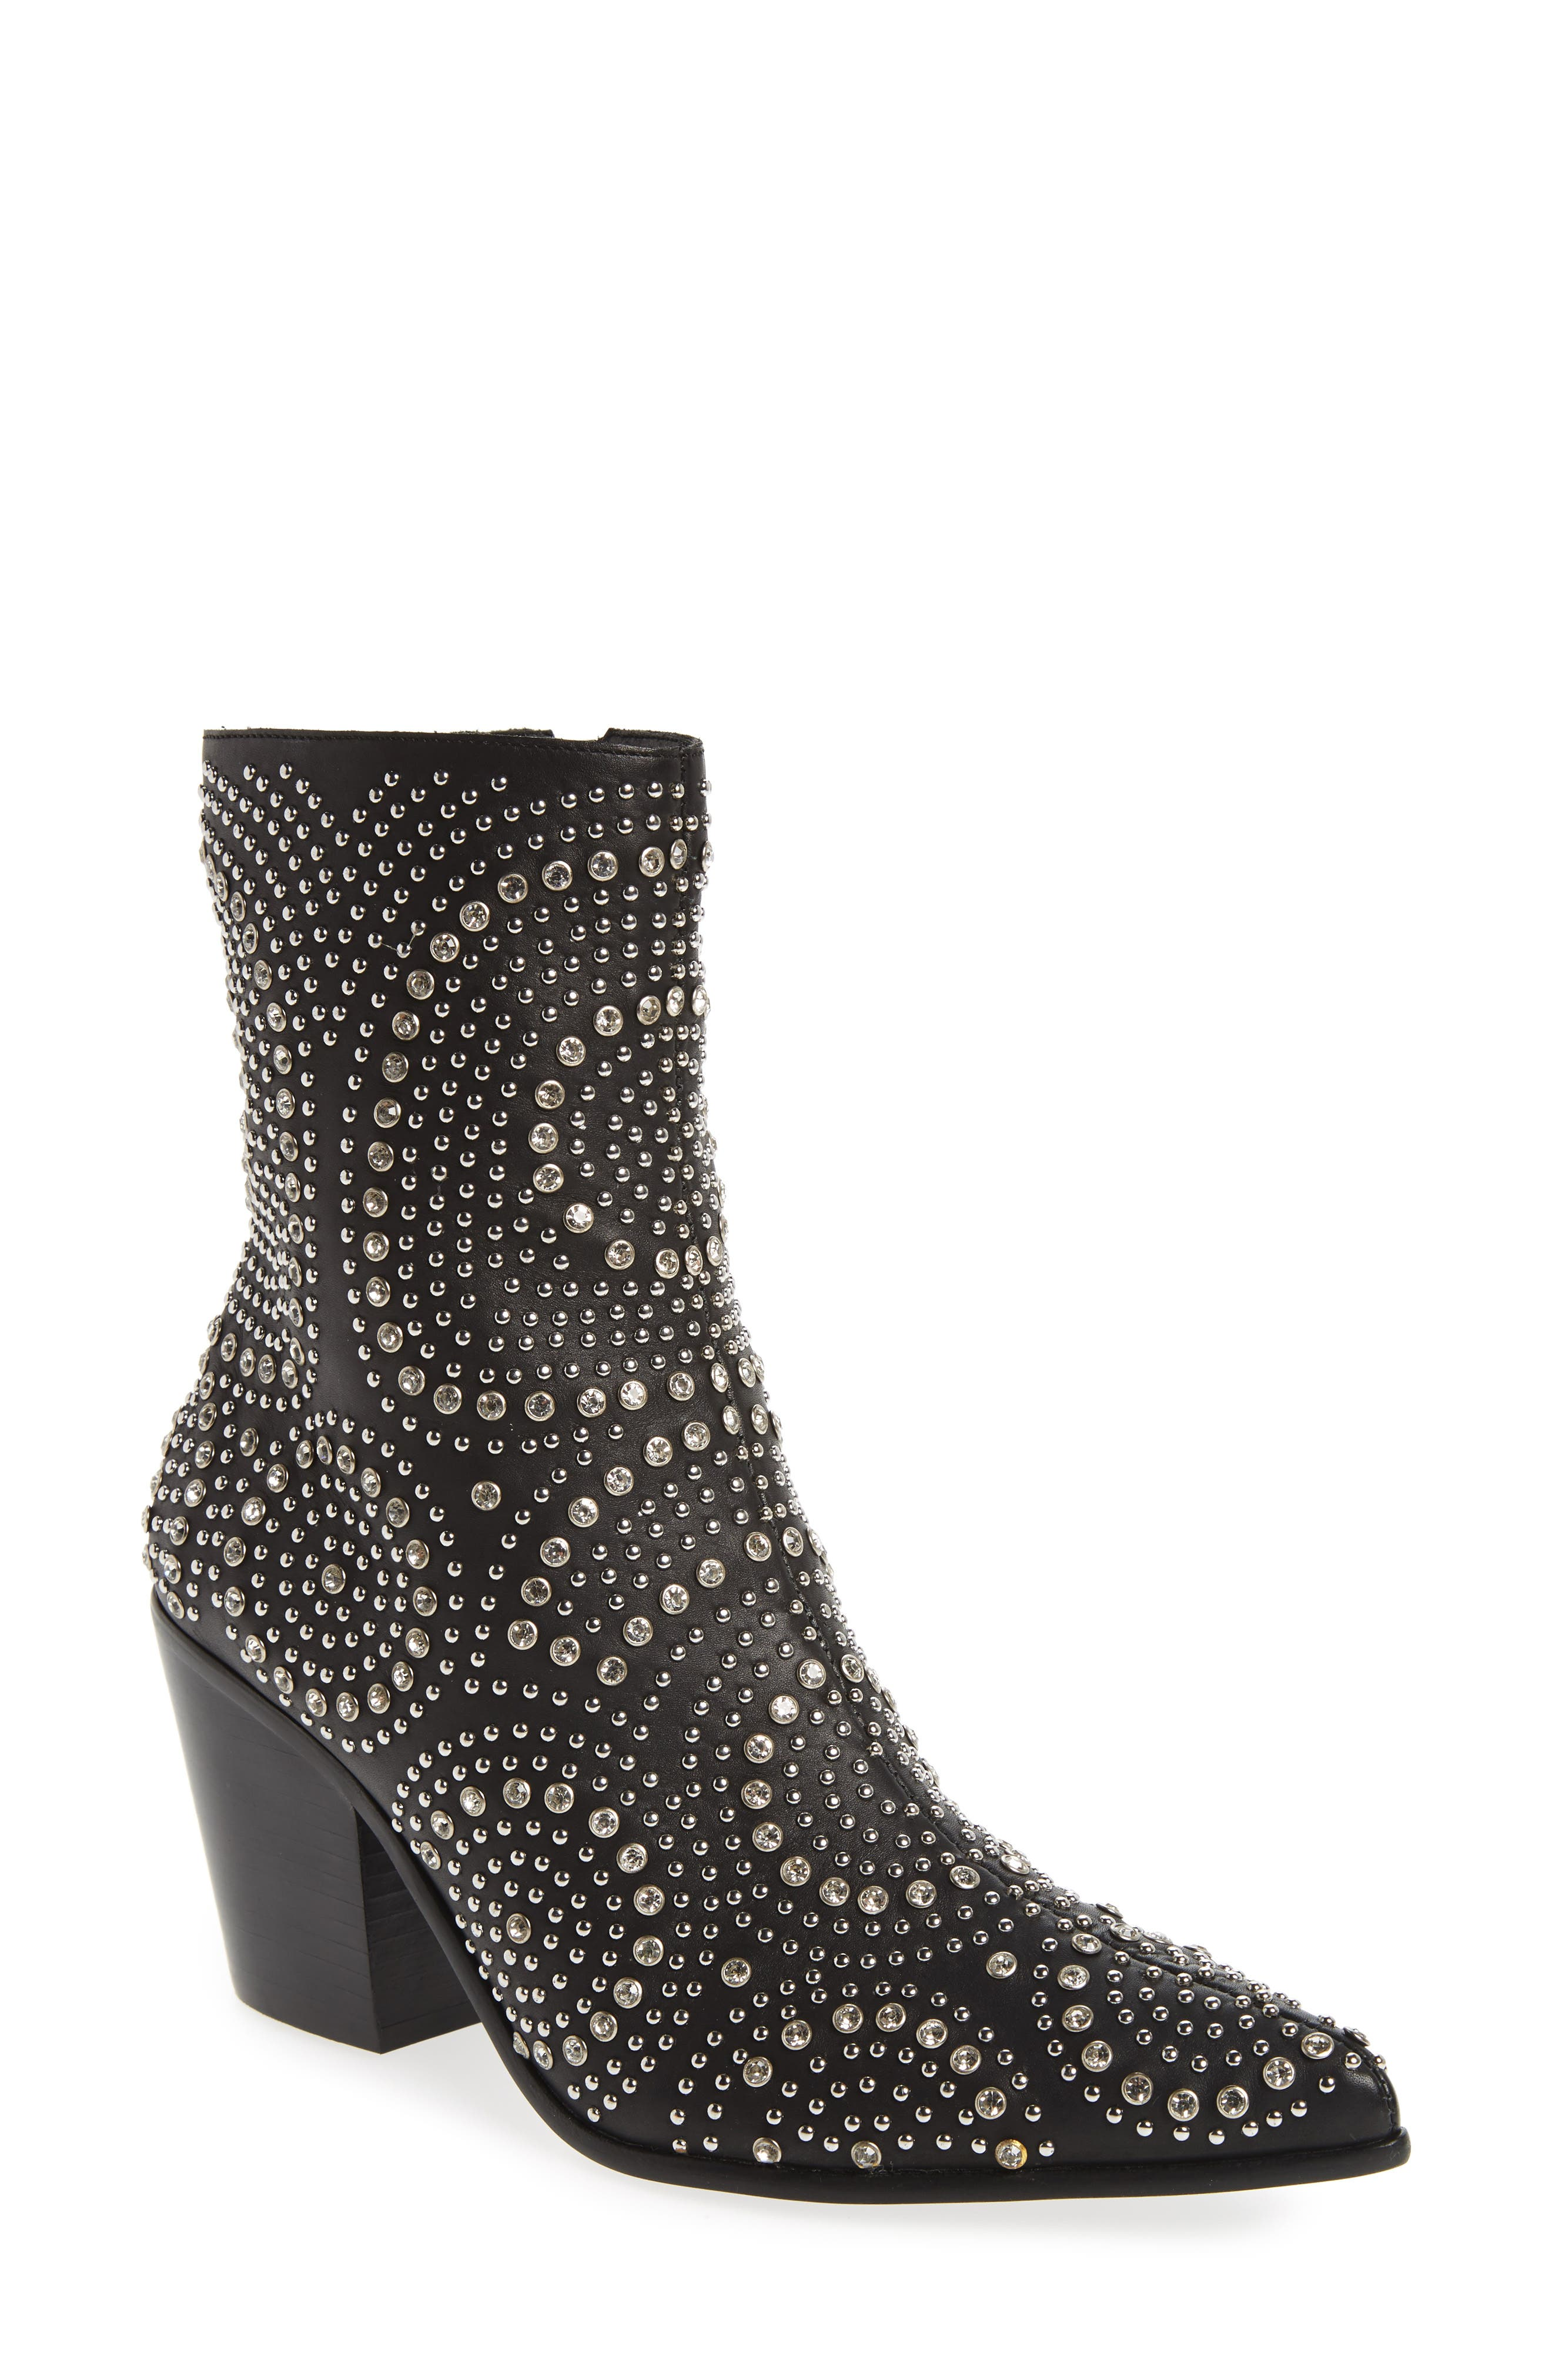 ACE-SJ Embellished Bootie,                         Main,                         color, BLACK/ SILVER SUEDE